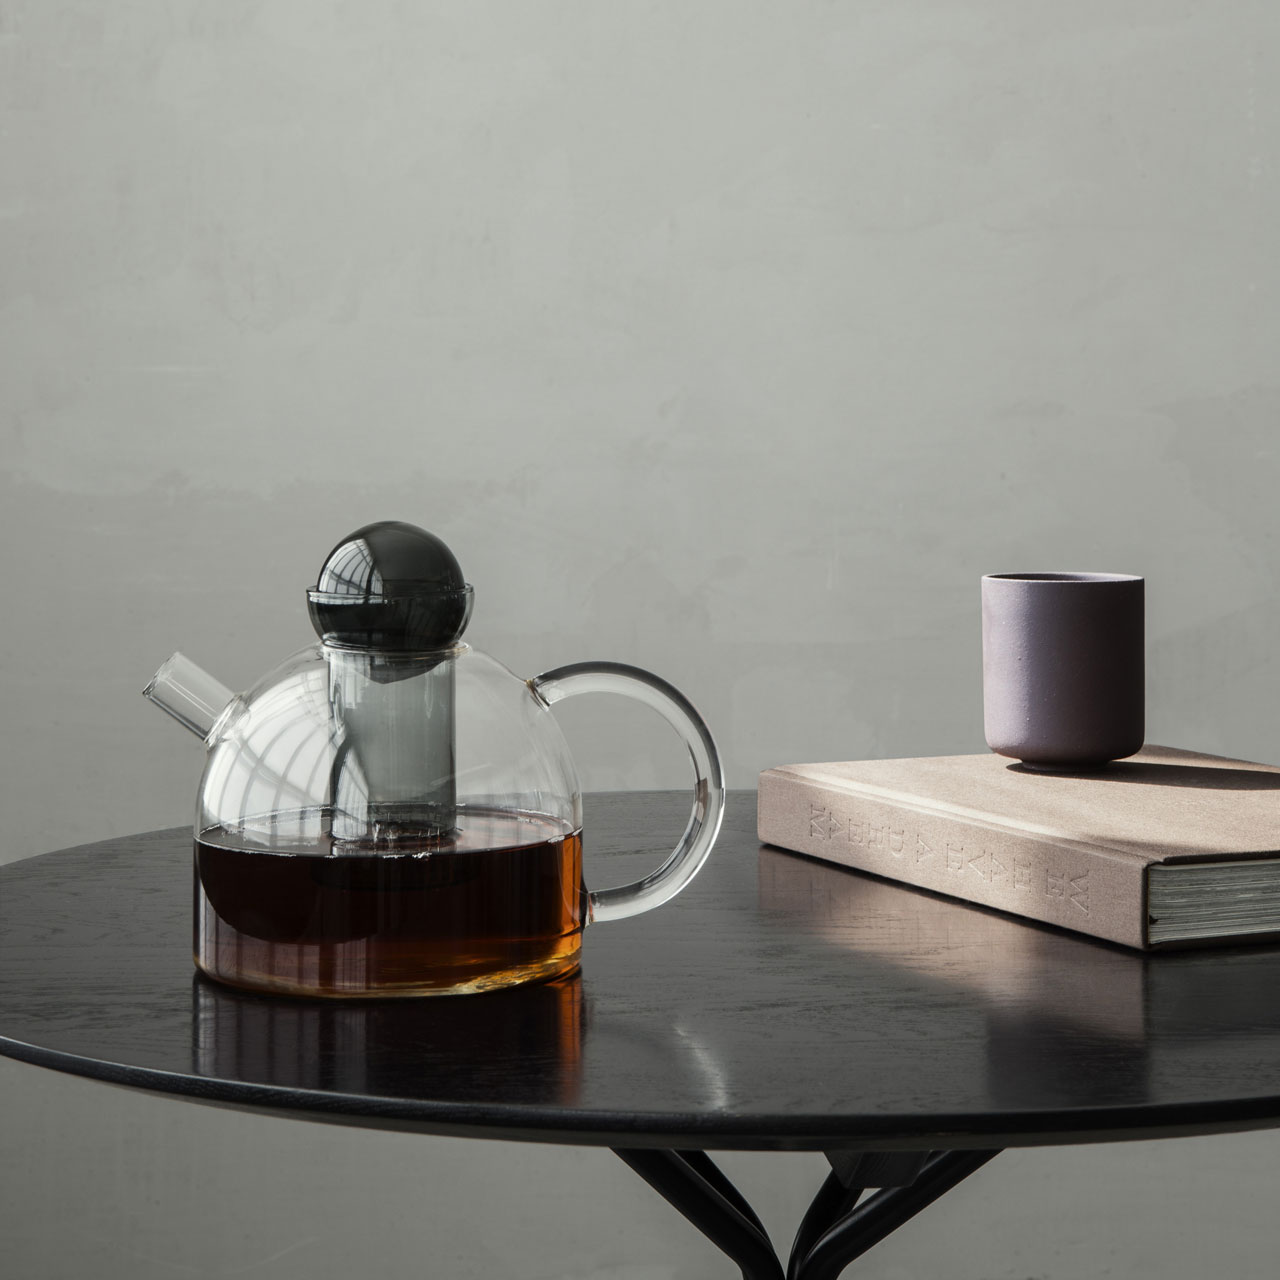 Still Teapot by ferm Living.Photo © ferm Living.